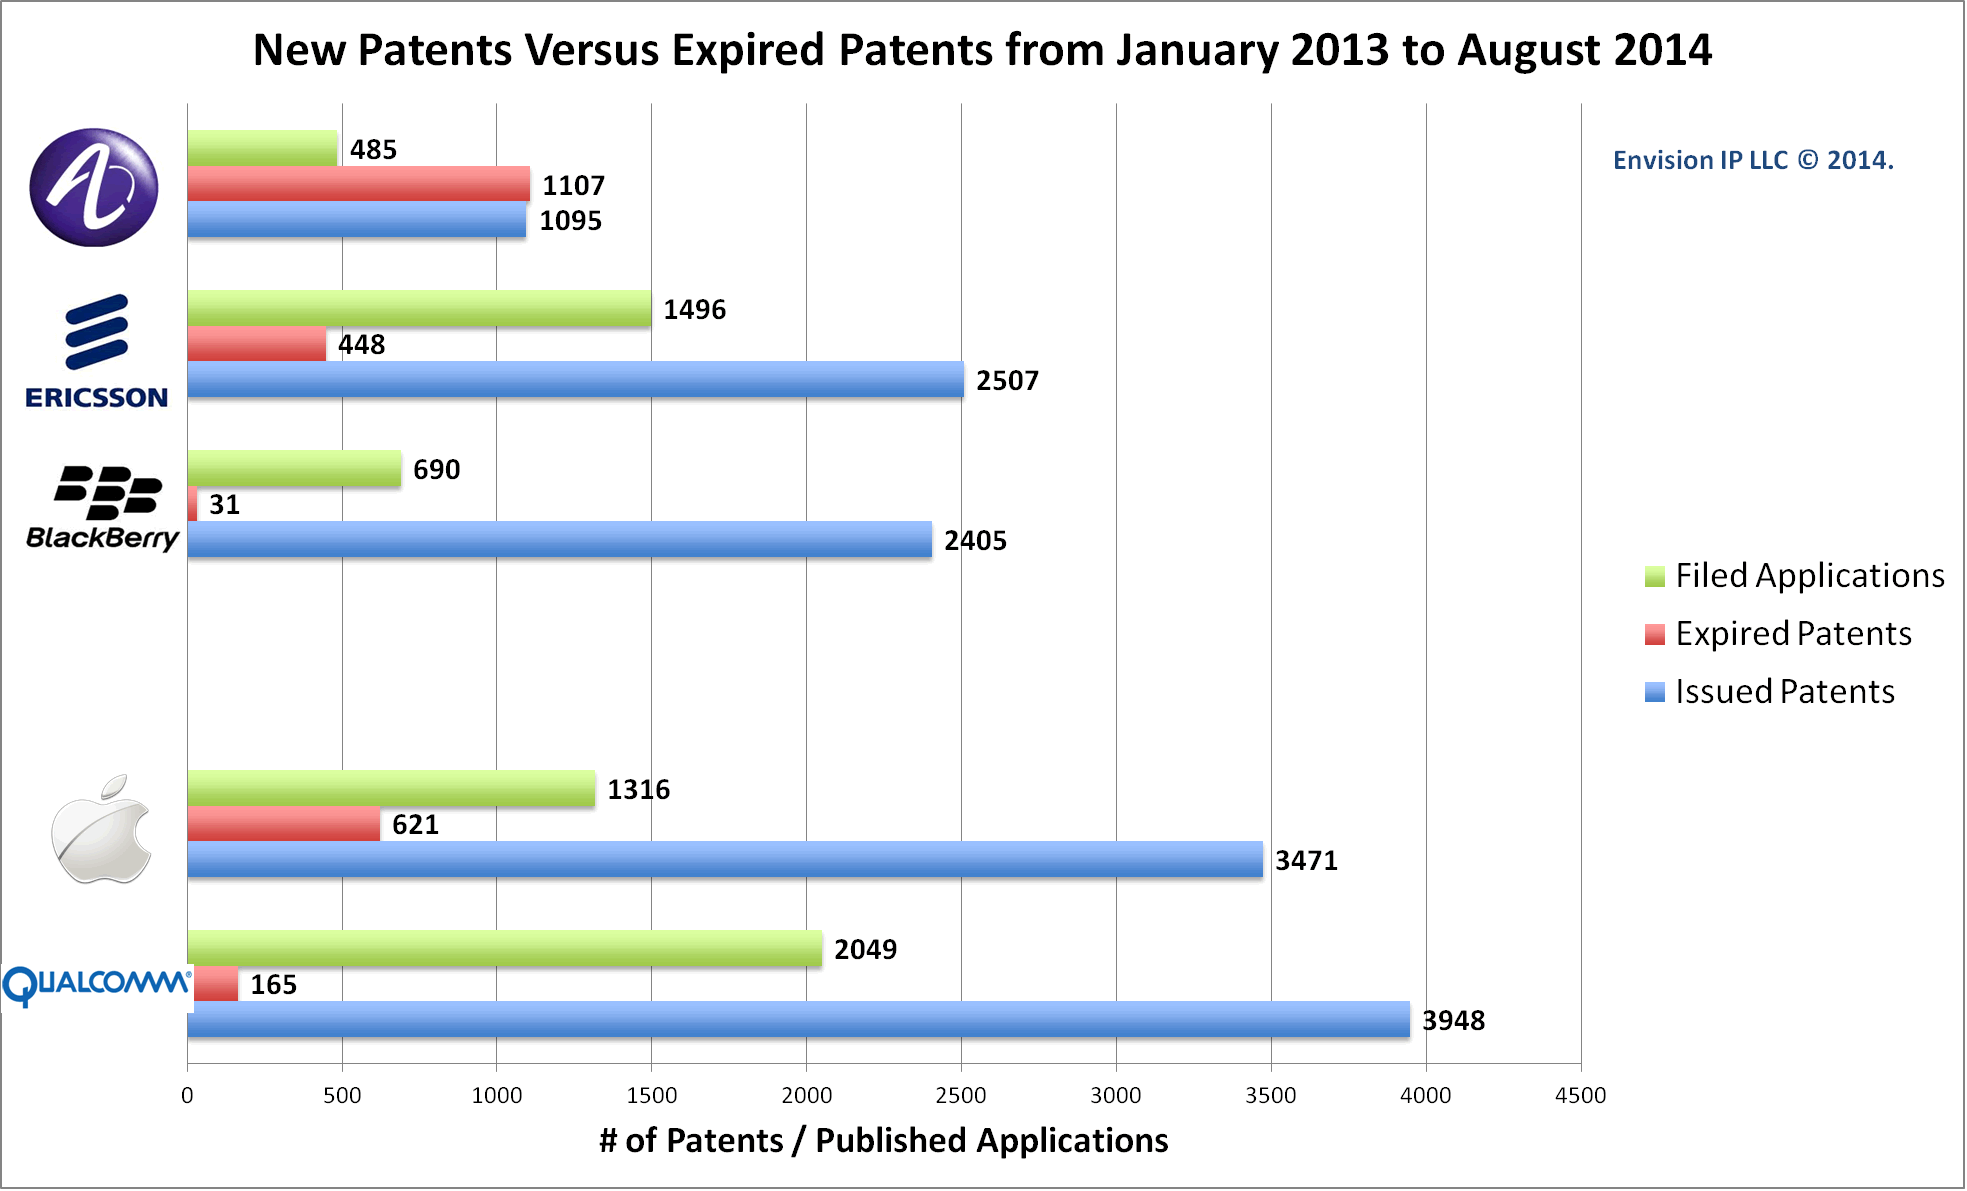 Alcatel_Ericsson_Blackberry_Qualcomm_Apple_Patent_Expirations_EnvisionIP